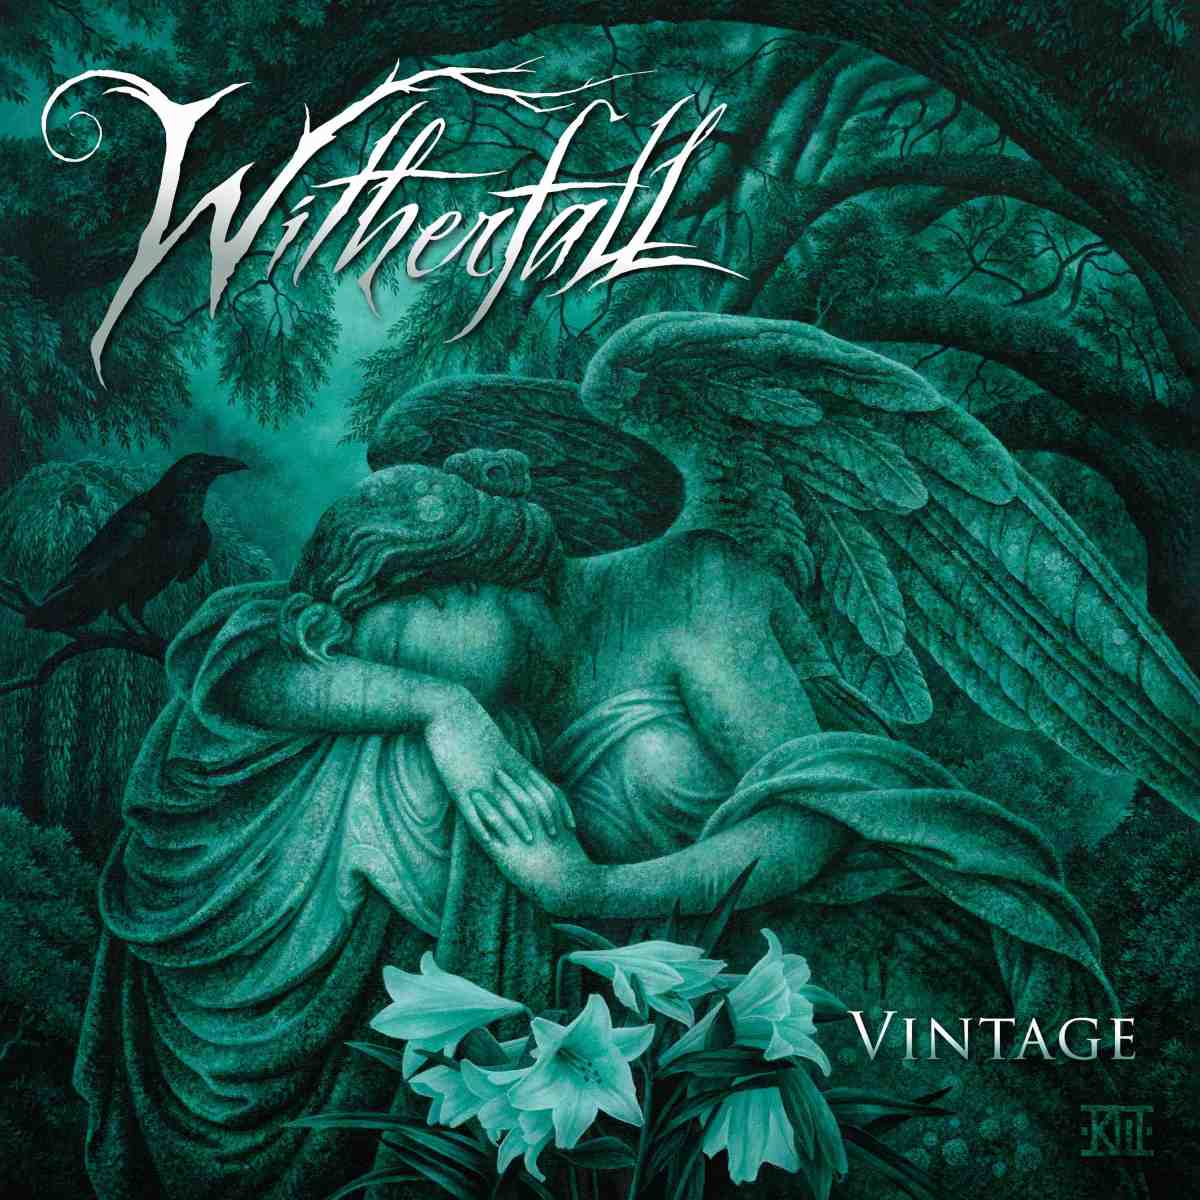 CD review WITHERFALL 'Vintage' - EP